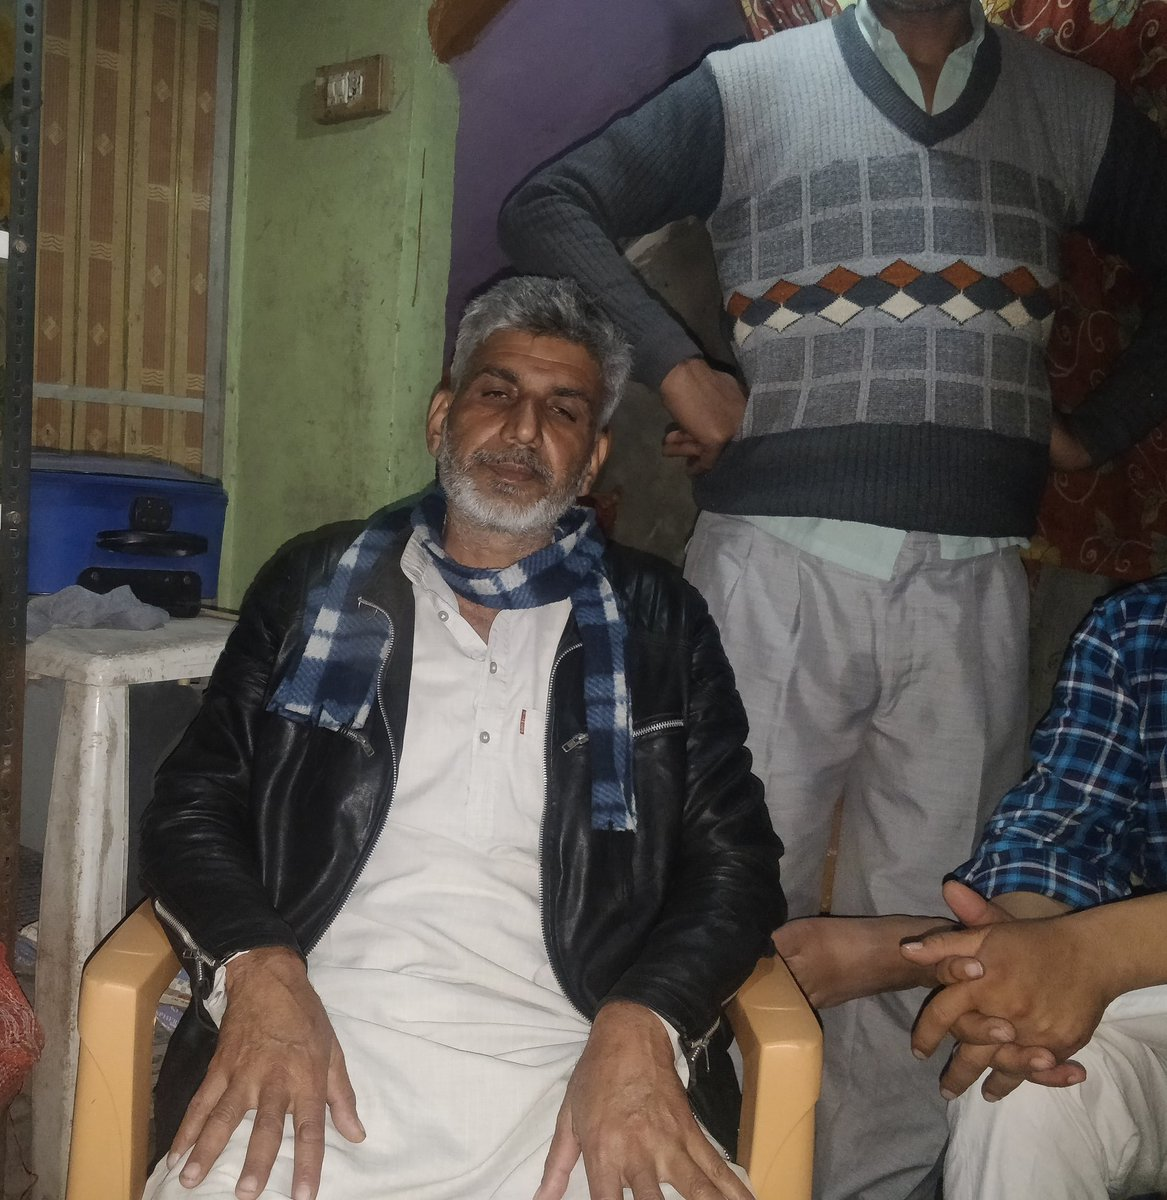 Agaz Hussain, father of Ashfaq Hussain (22), an electrician of Bhagirathi Vihar who was shot dead.  Father says he had gone for work and they got to know he was shot at 7 pm at night.  Ashfaq had got married on February 14  #DelhiBurning #DelhiViolence #DelhiRiots2020 @TOIDelhipic.twitter.com/v6mIcNxPBi